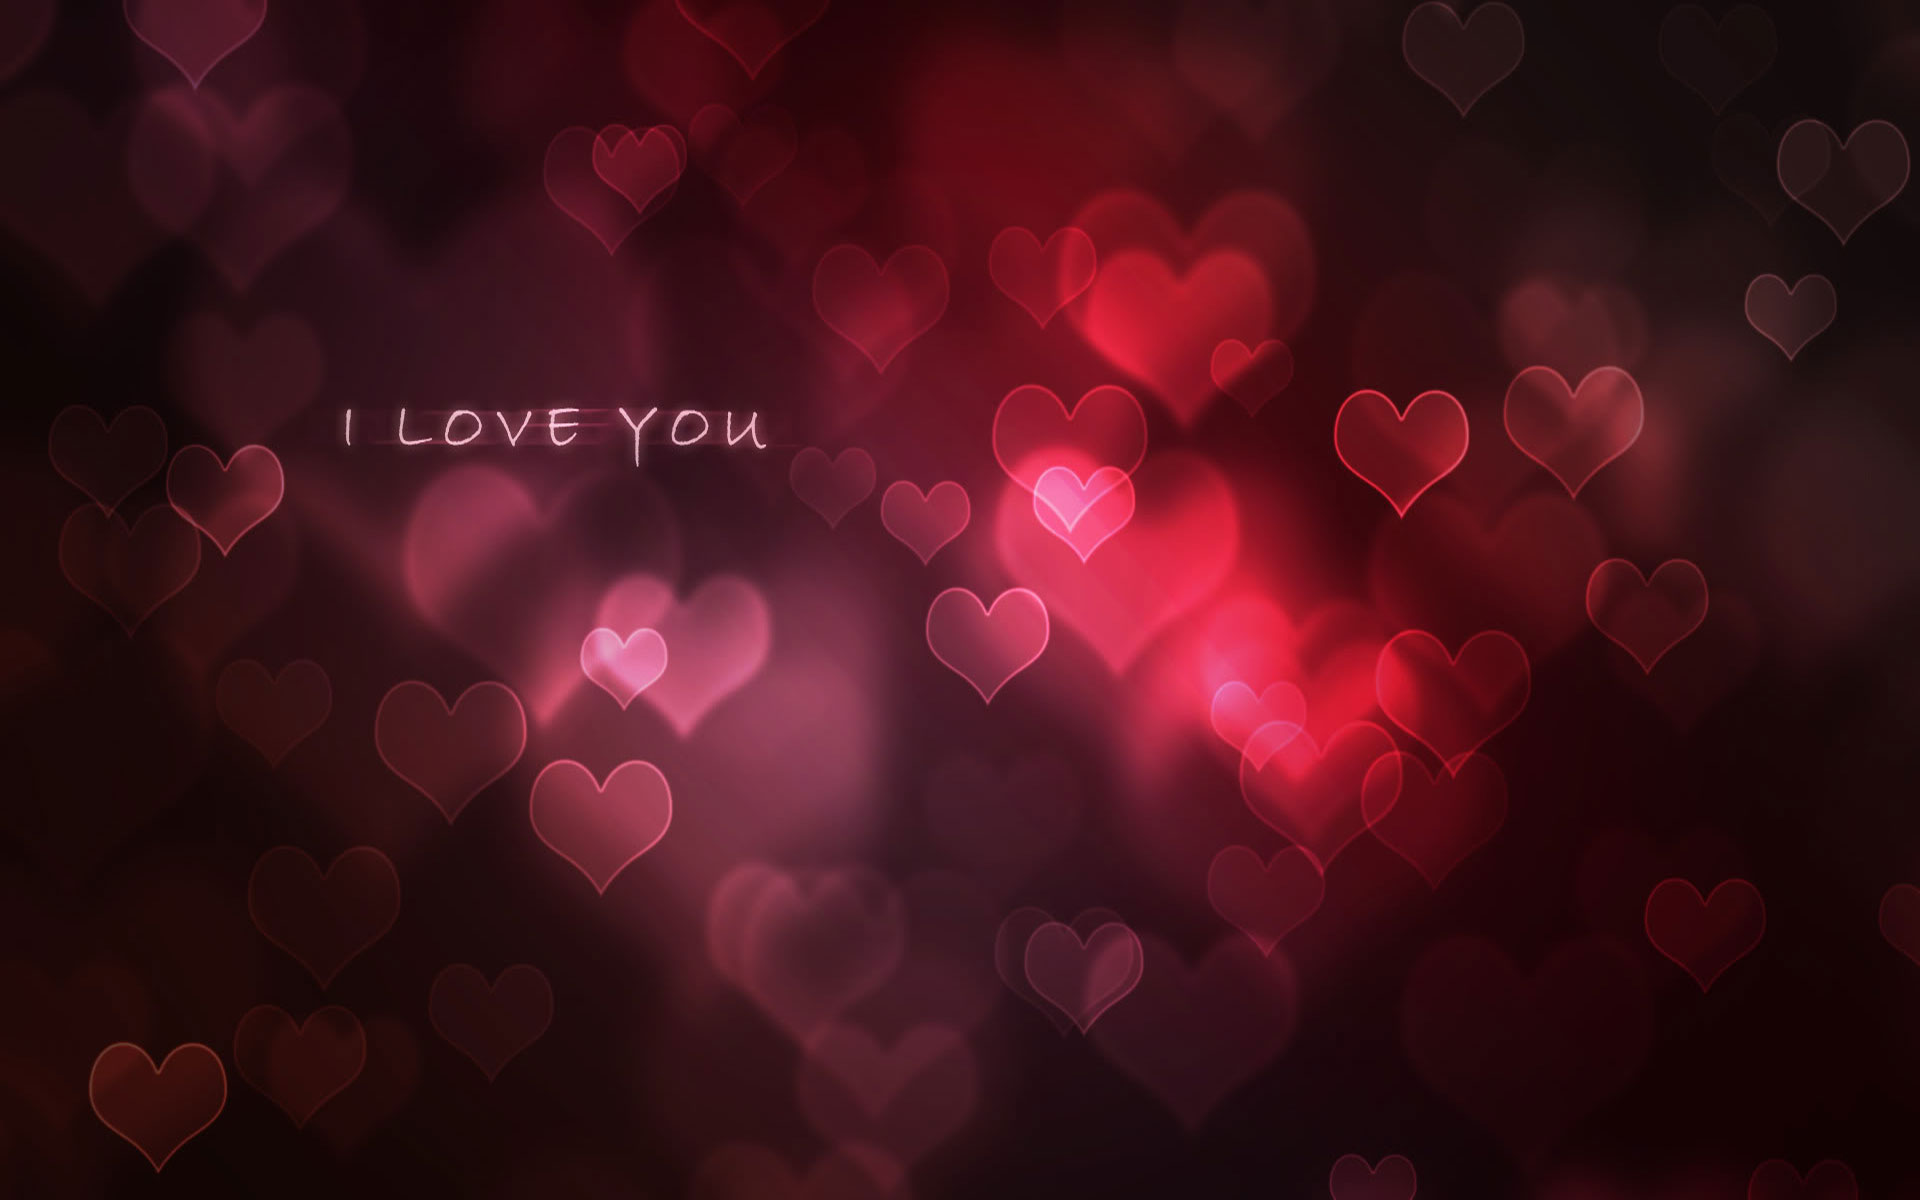 Love Hd Wallpapers Tumblr : 25+ Free HD I Love You Wallpapers cute I Love You Images